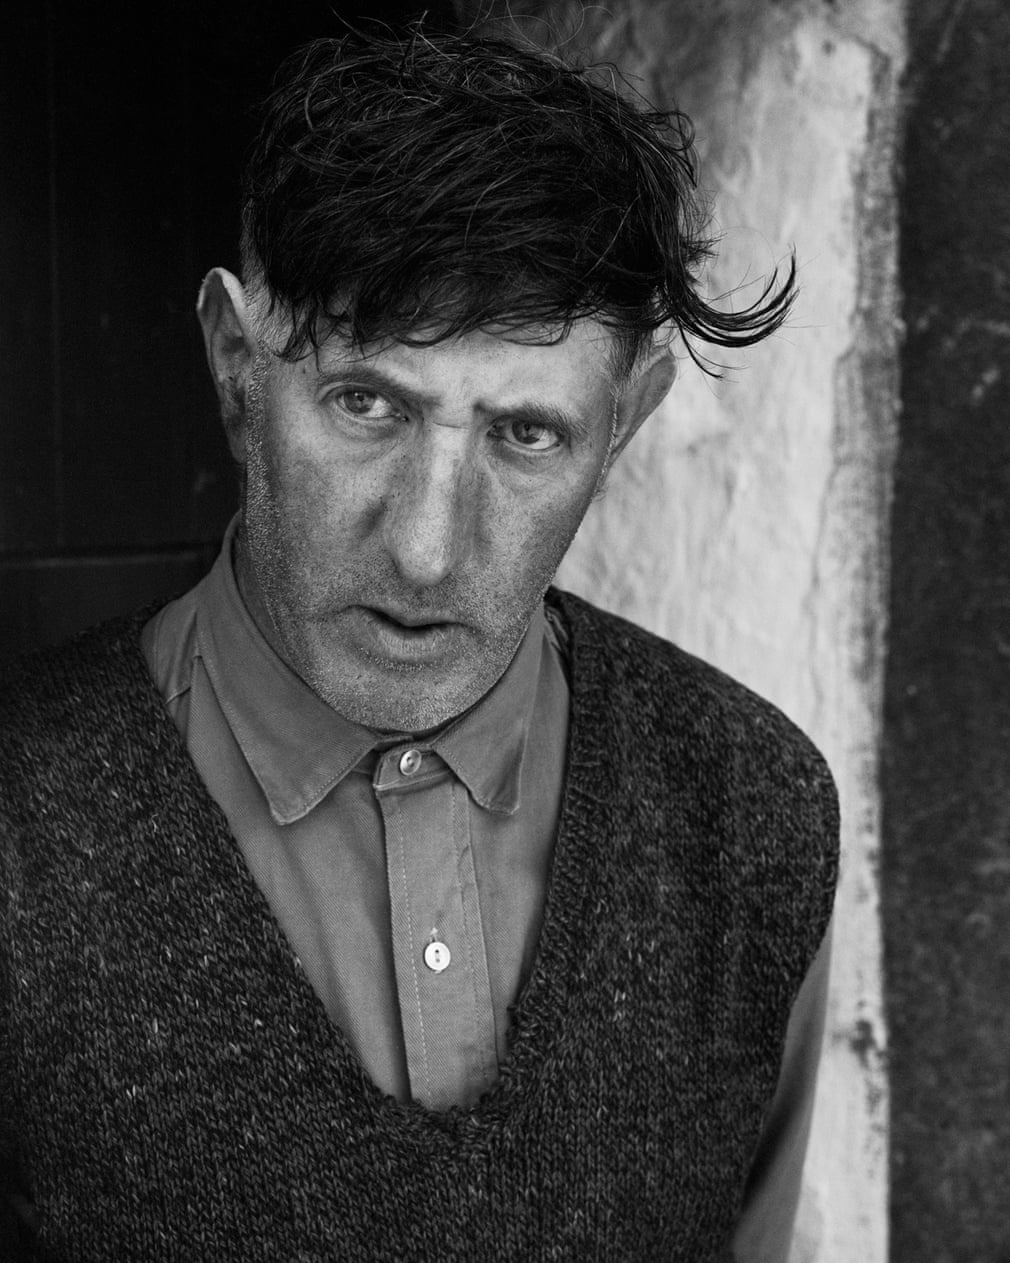 Mr. Johnny Moore, Ballalonna, Isle of Man, 1971 Photograph- Photograph by Chris Killip